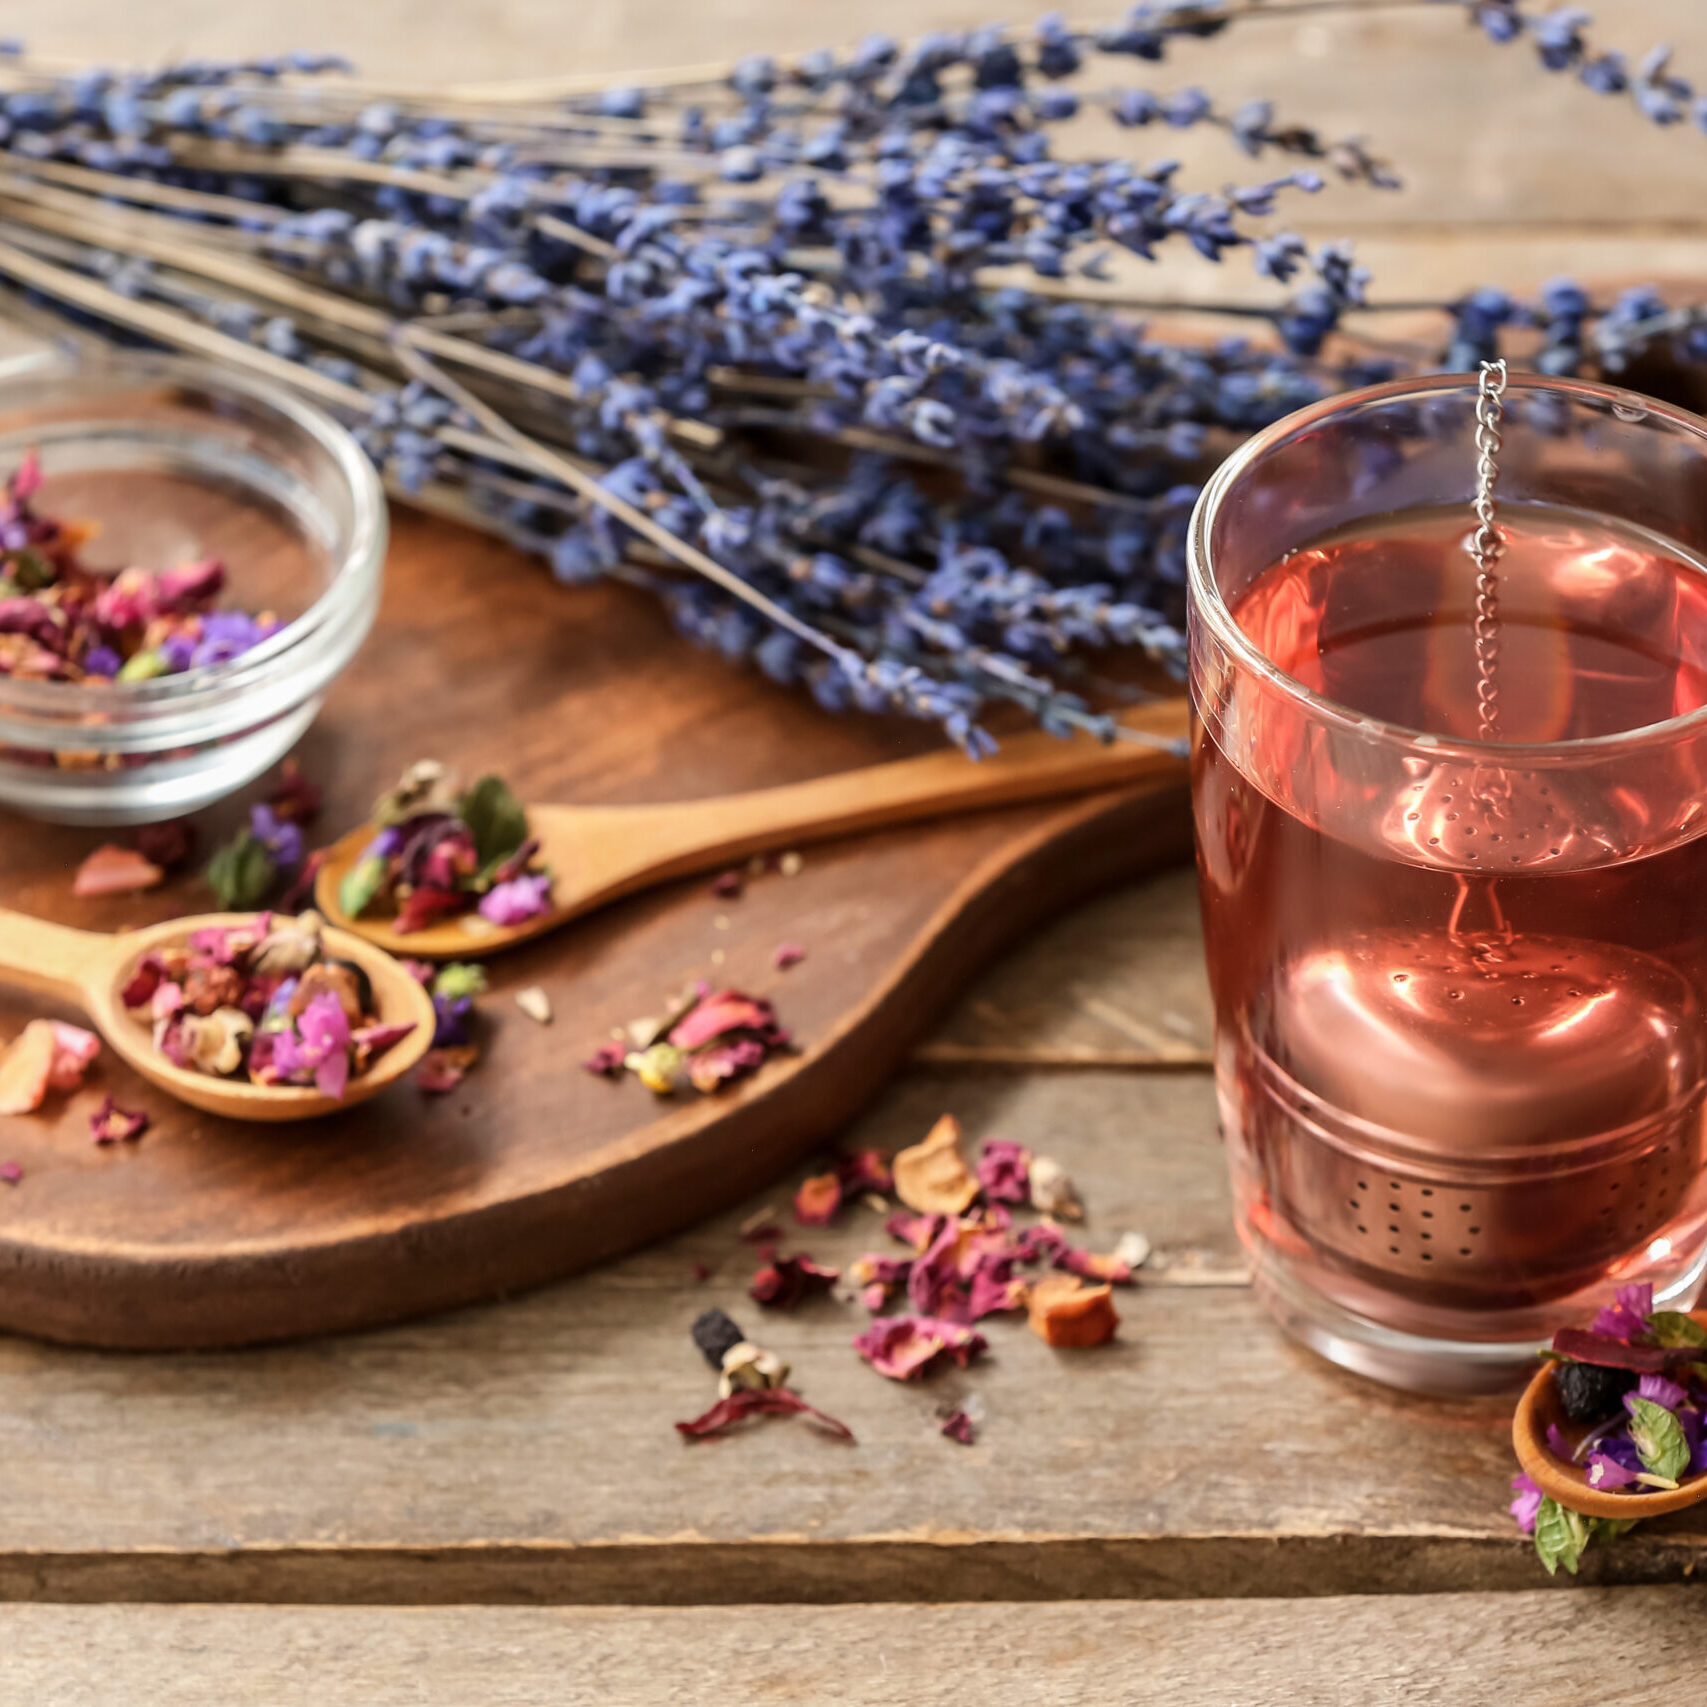 Cup with floral tea and dry flowers in spoons on wooden background